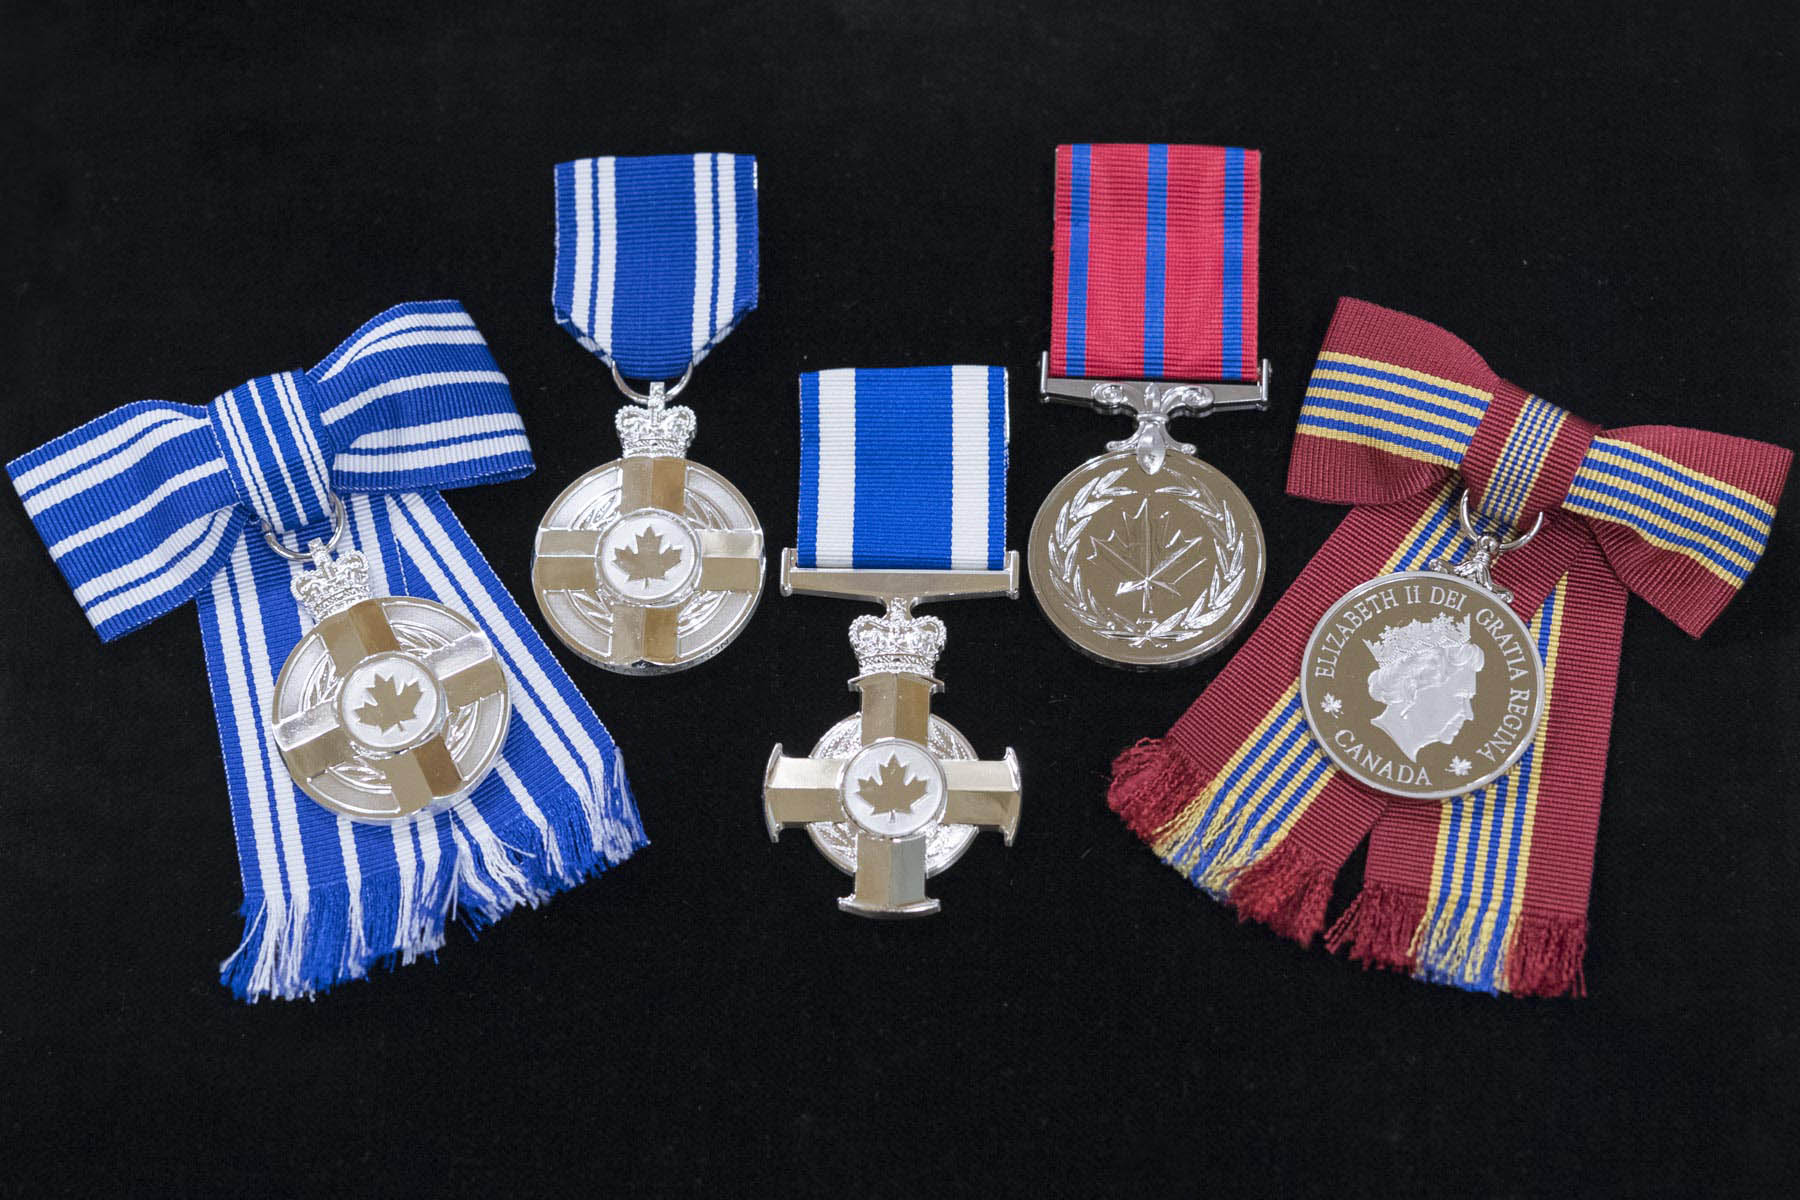 The Governor General presented 48 honours to military members and civilians, who by their excellence, courage and exceptional service brought honour to the Canadian Armed Forces and to various military organizations.